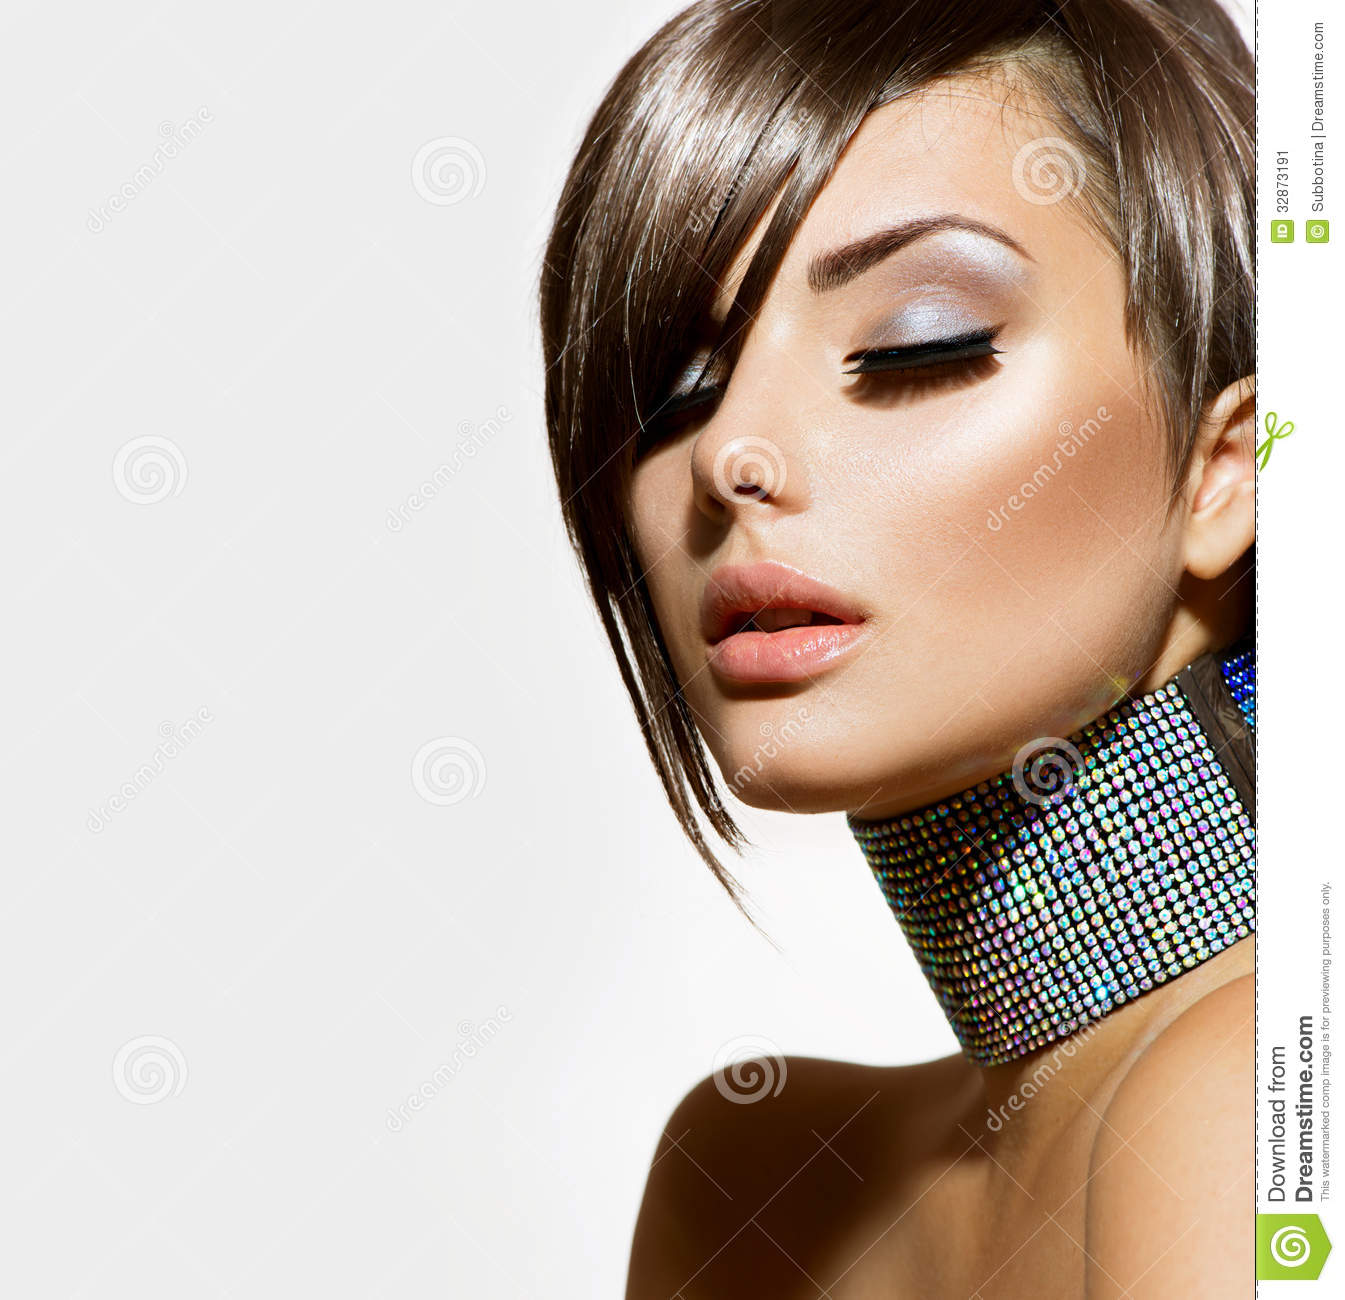 Fashion Beauty Girl Stock Image  Image: 32873191